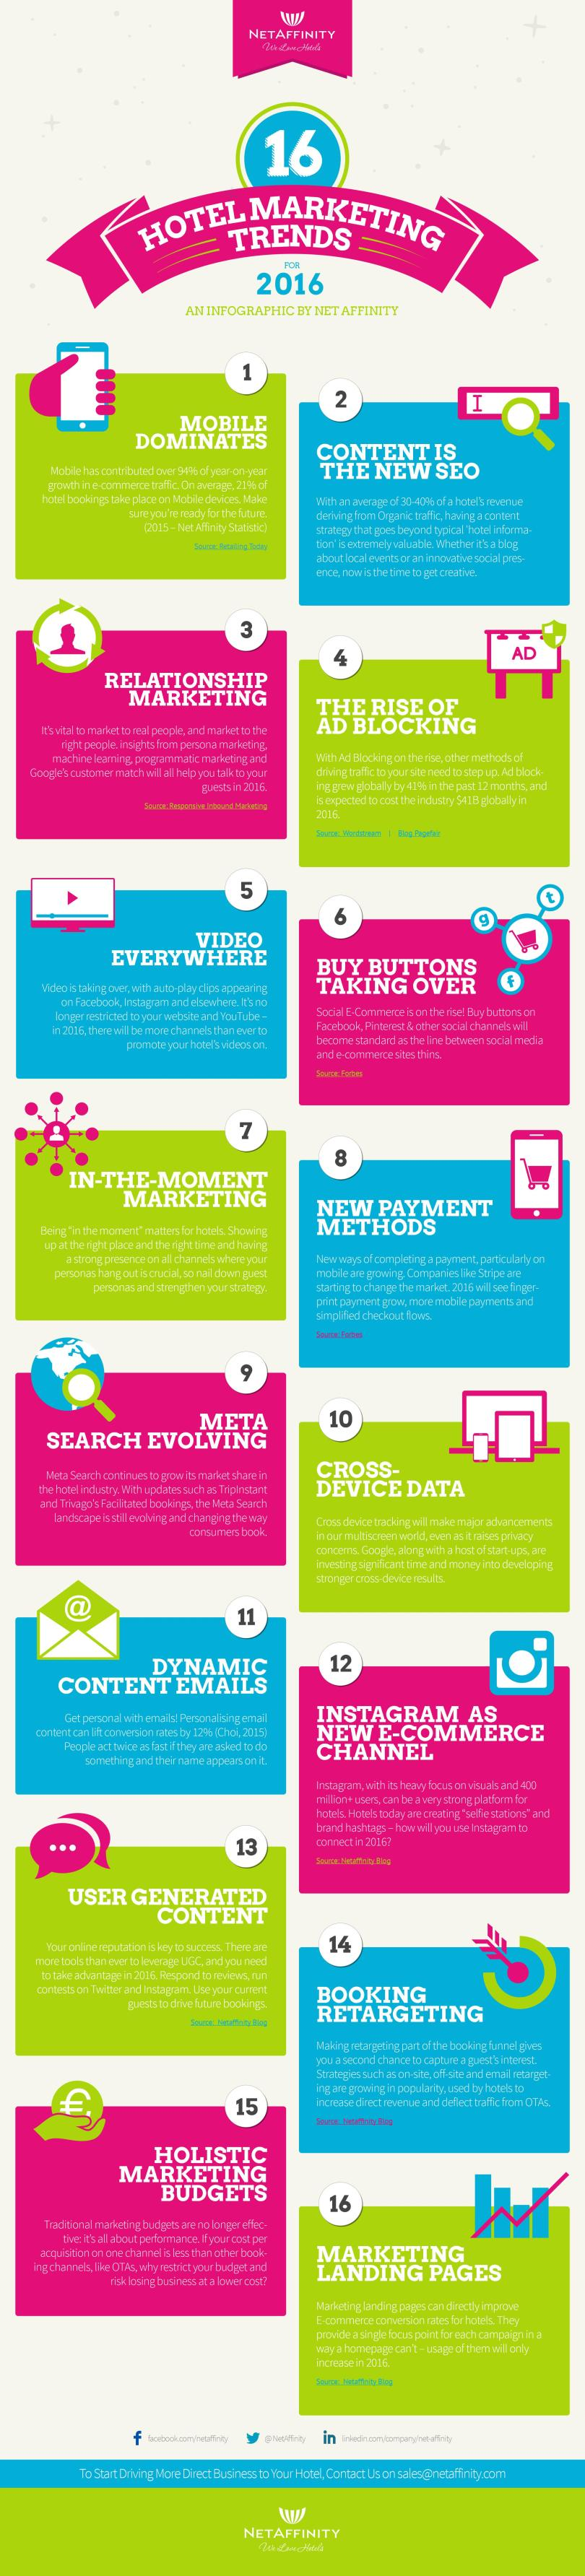 16-hotel-marketing-trends-for-2016-netaffinity